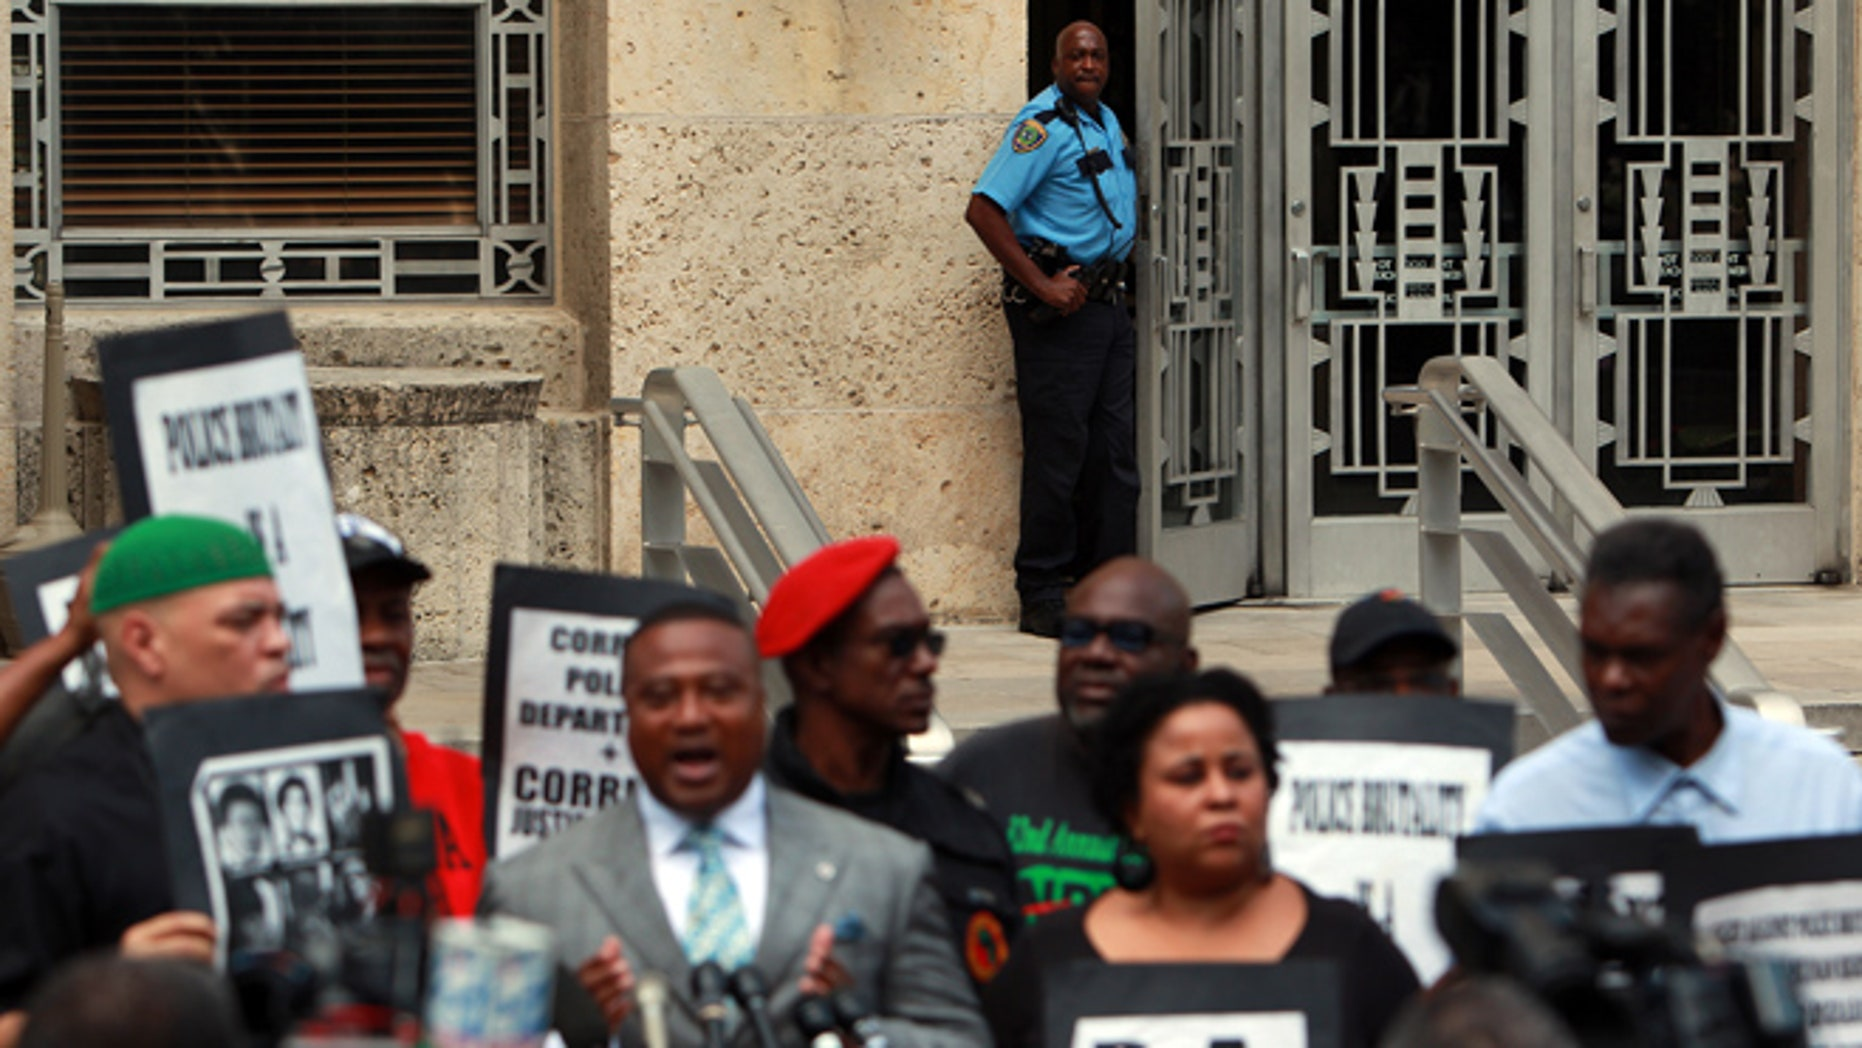 Sept. 25, 2012: An HPD officer peeks out of a door at City Hall as activists call for answers from city officials on why a police officer on Saturday fatally shot Brian Claunch outside City Hall in Houston.